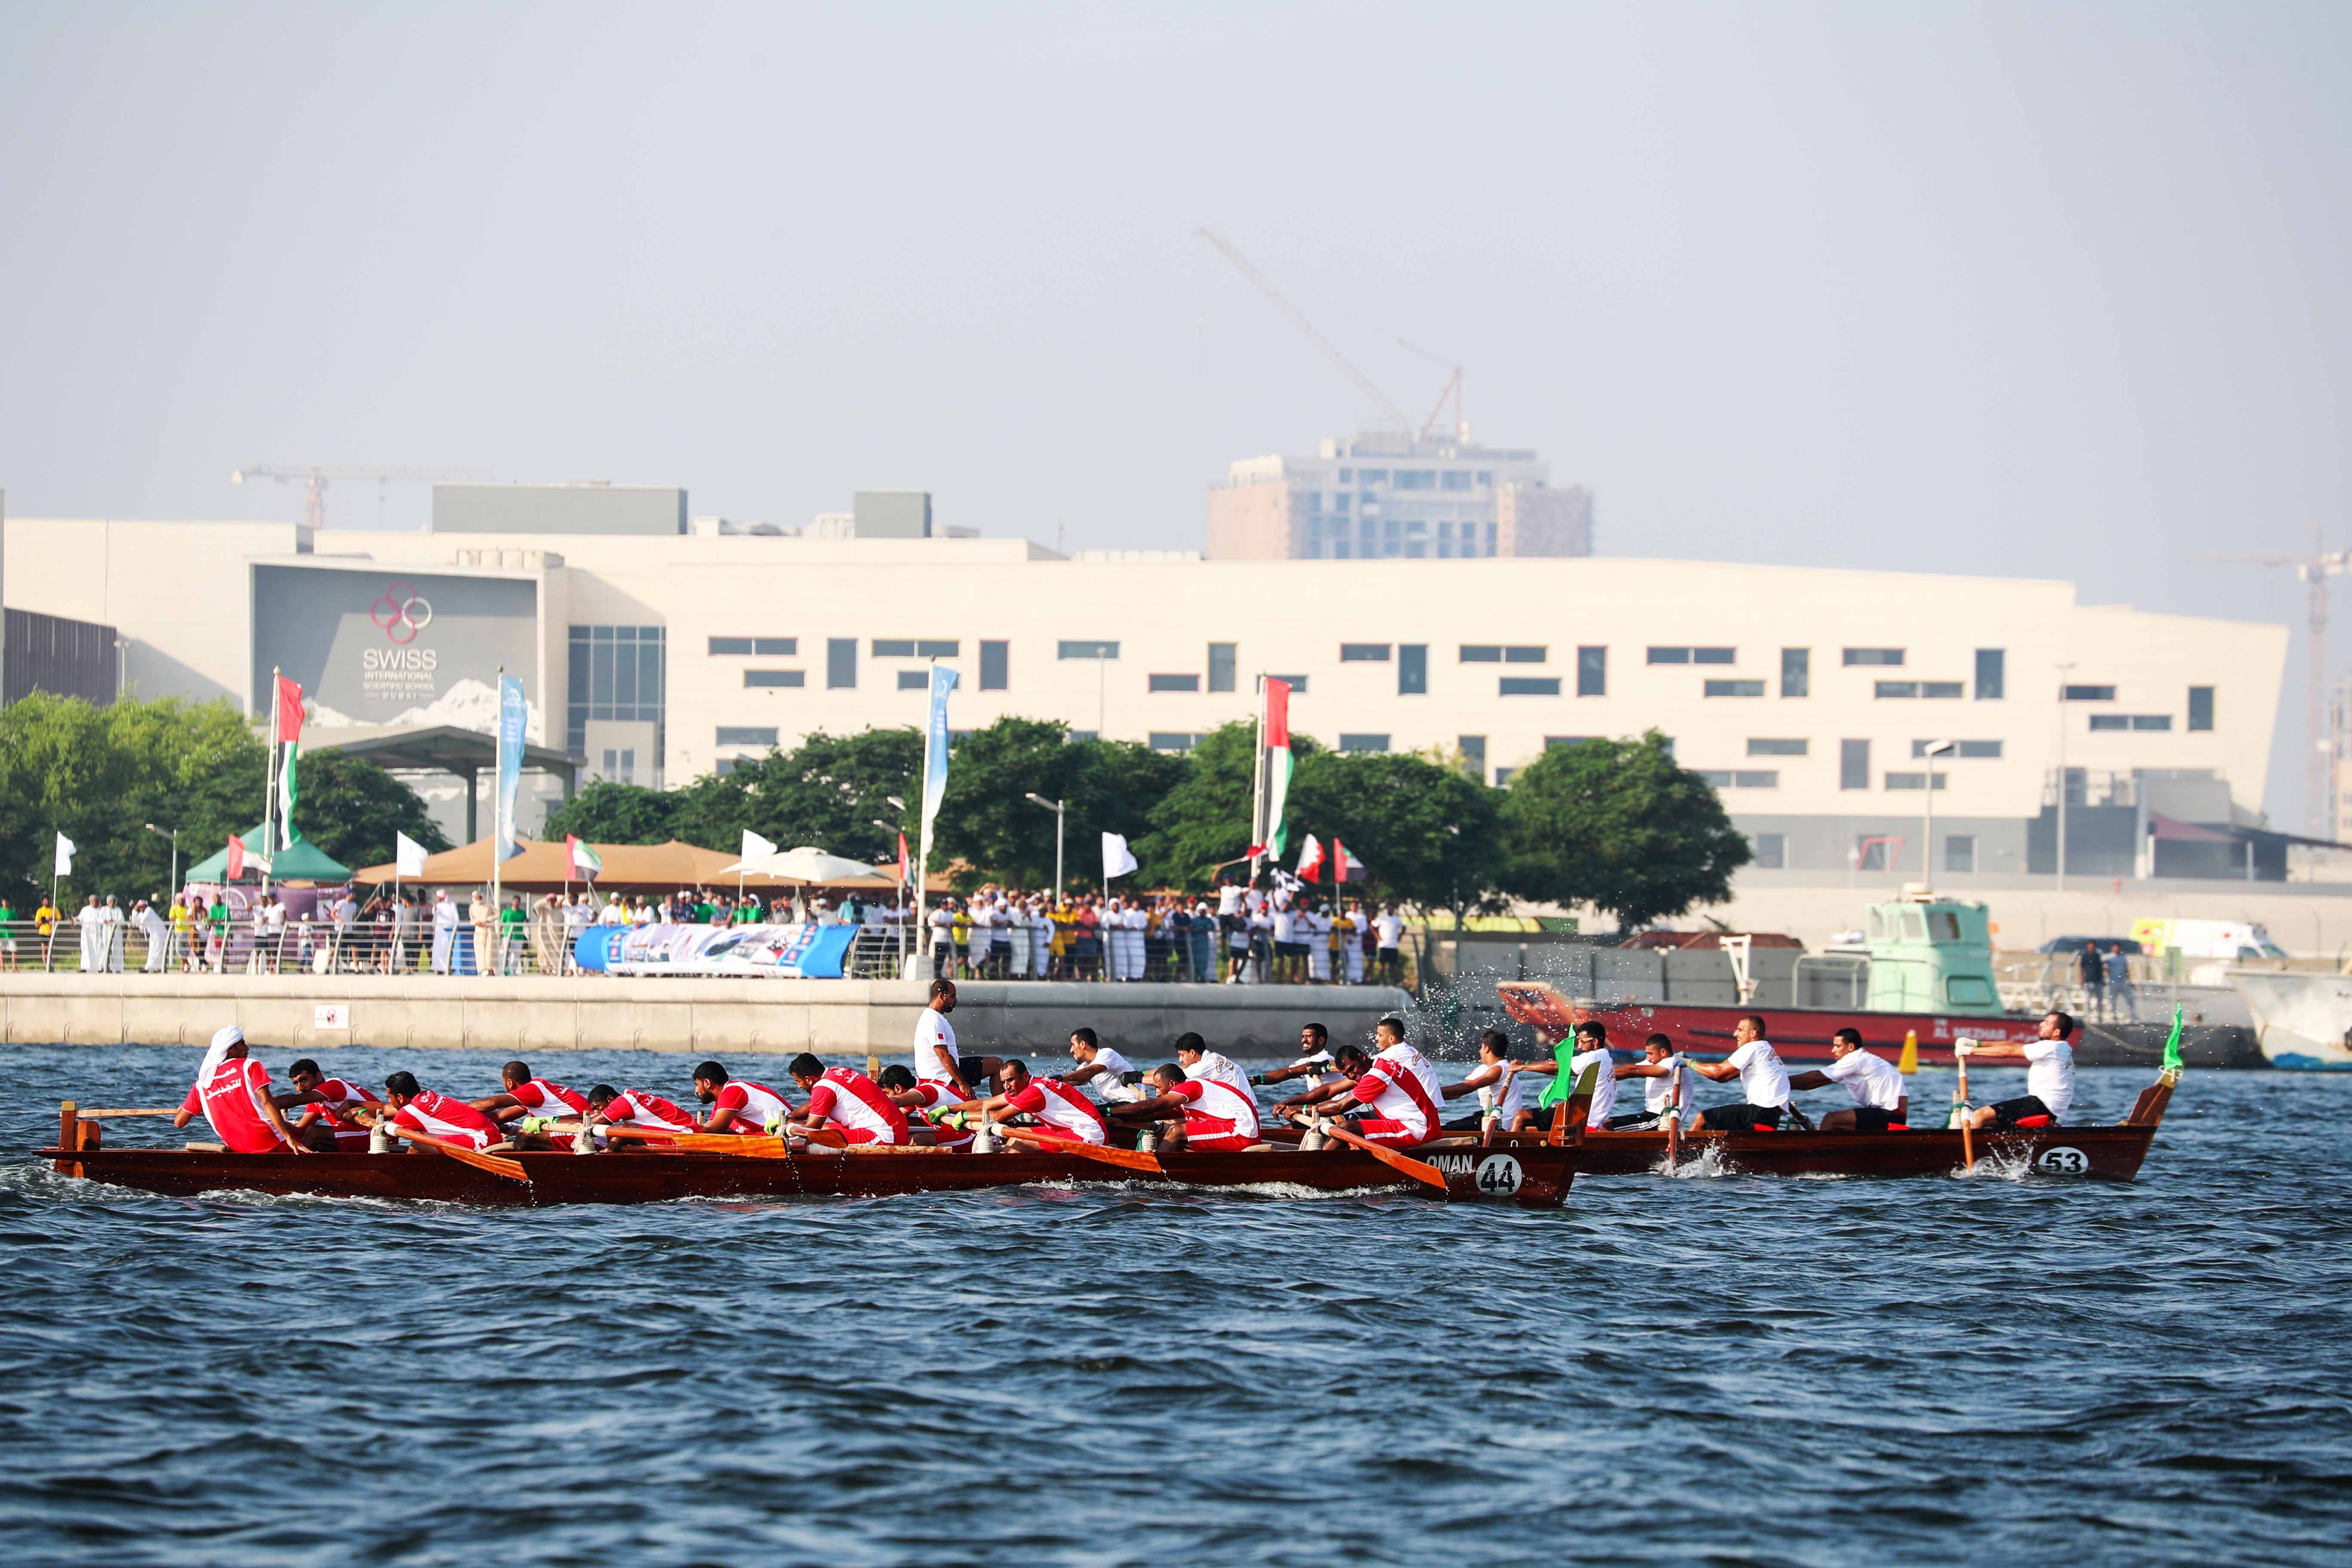 Registration Closes today for Dubai Traditional Rowing Race Heat 2